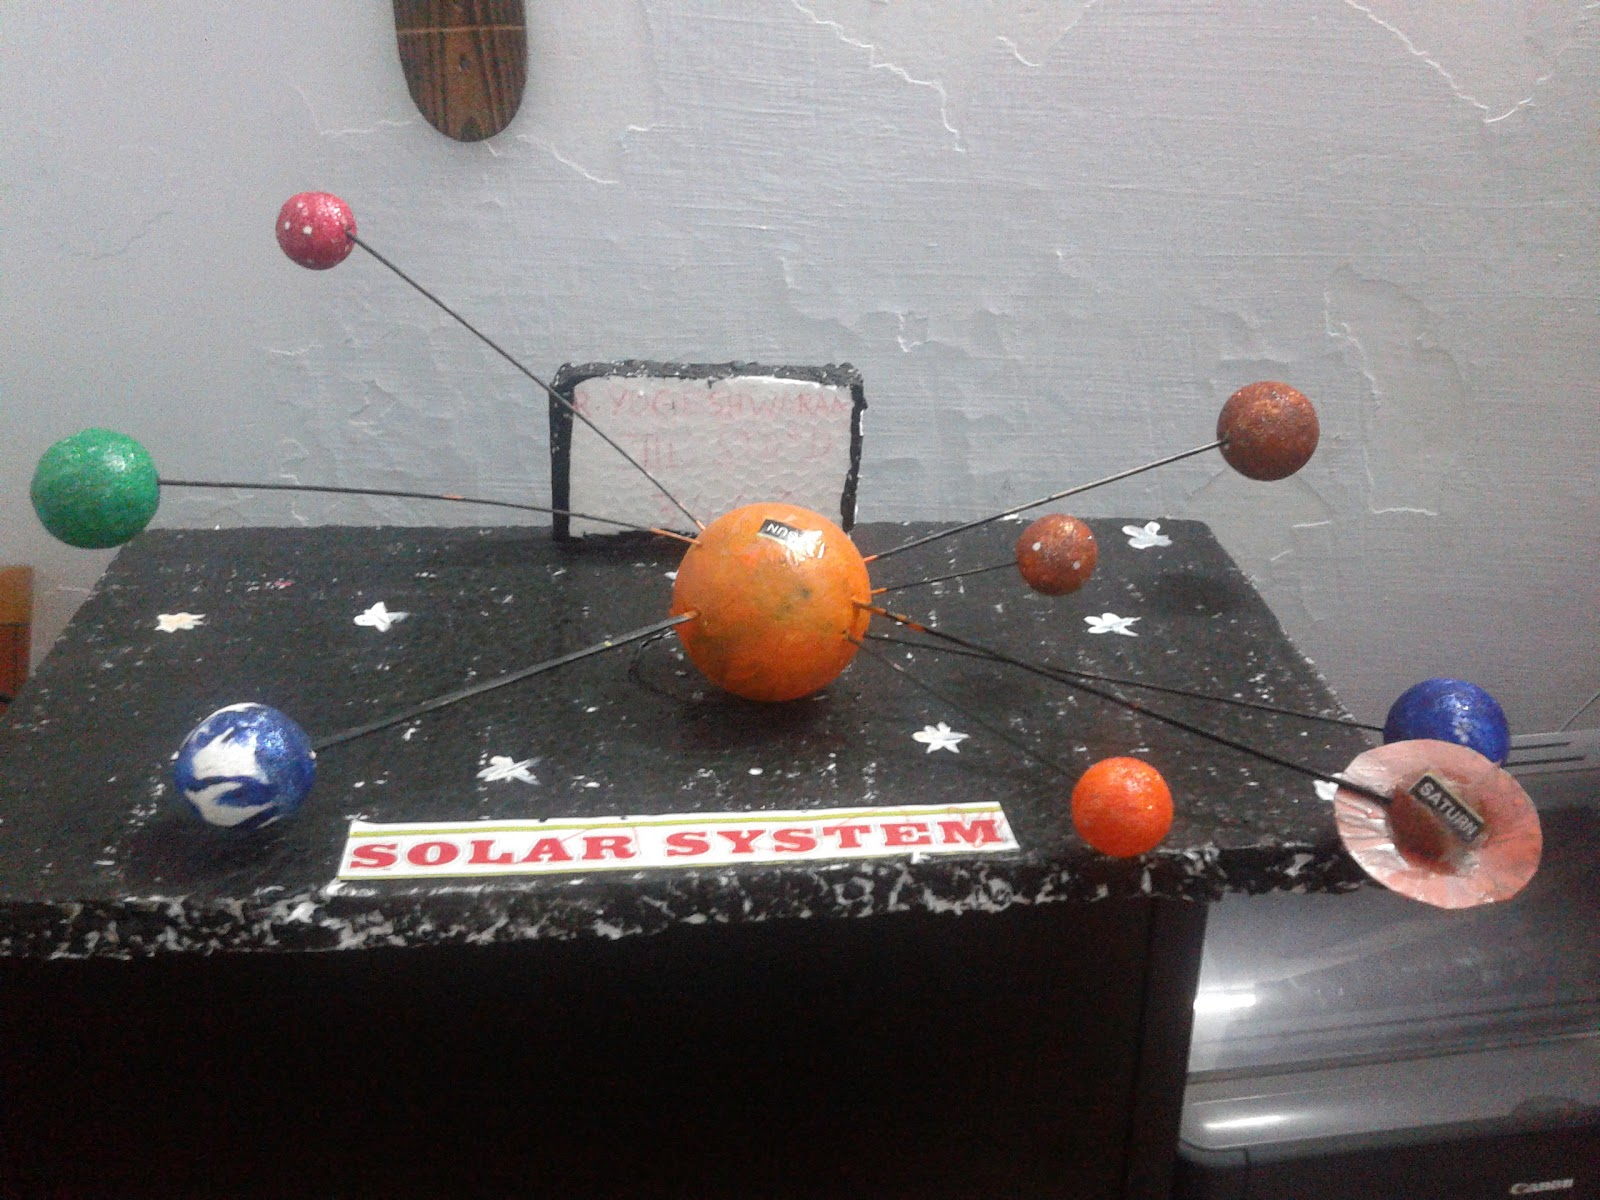 science solar system projects - photo #39